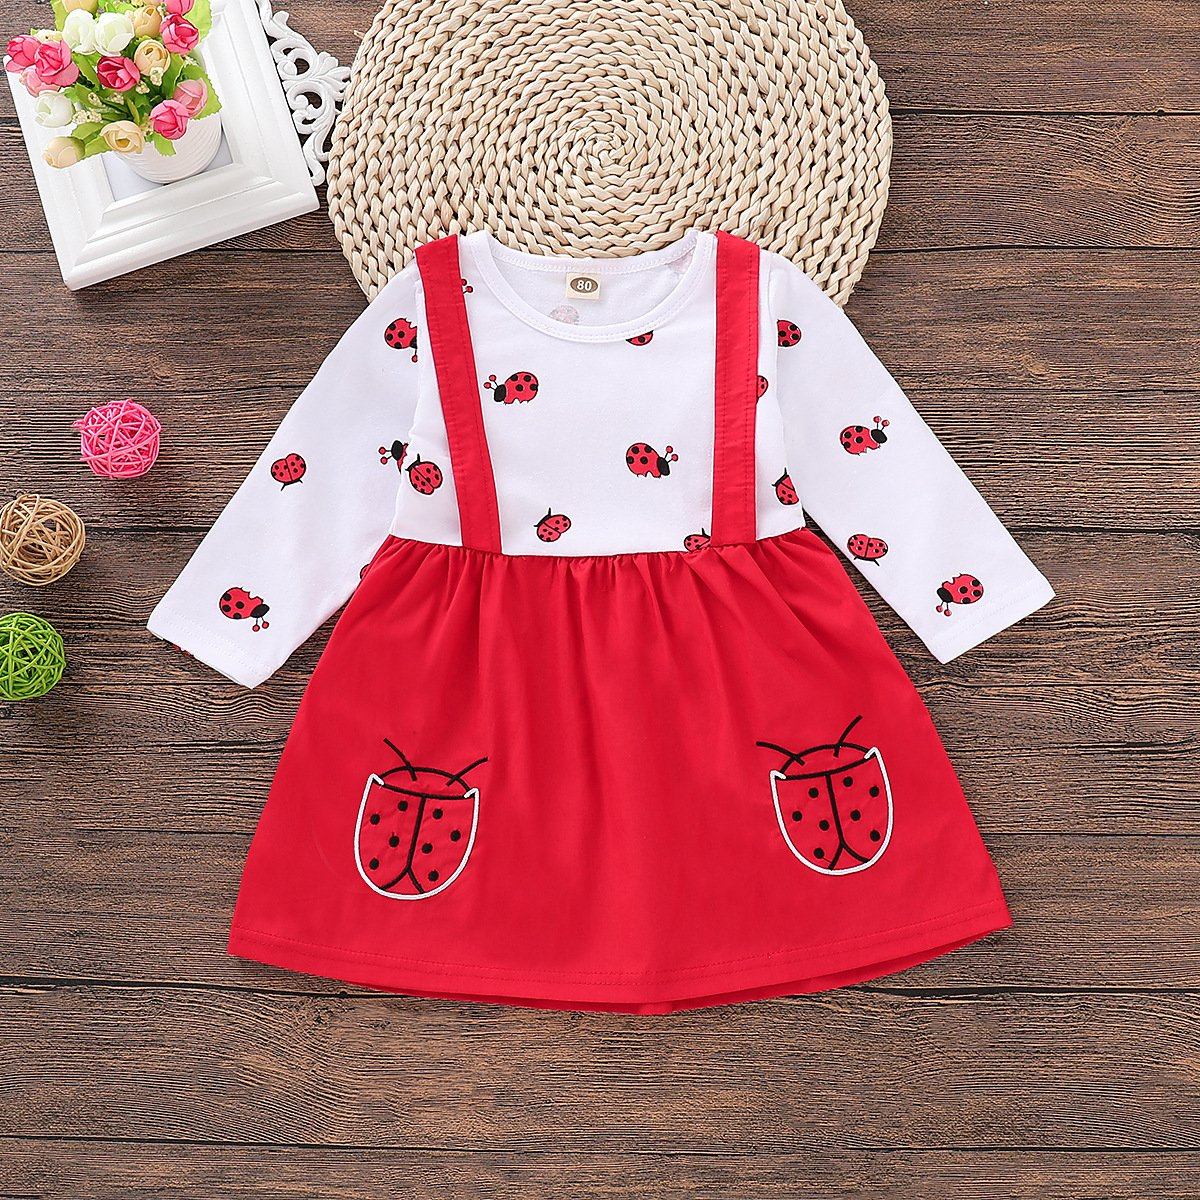 First Day of Kindergarten - Ladybug Long-Sleeved Dress With Suspenders